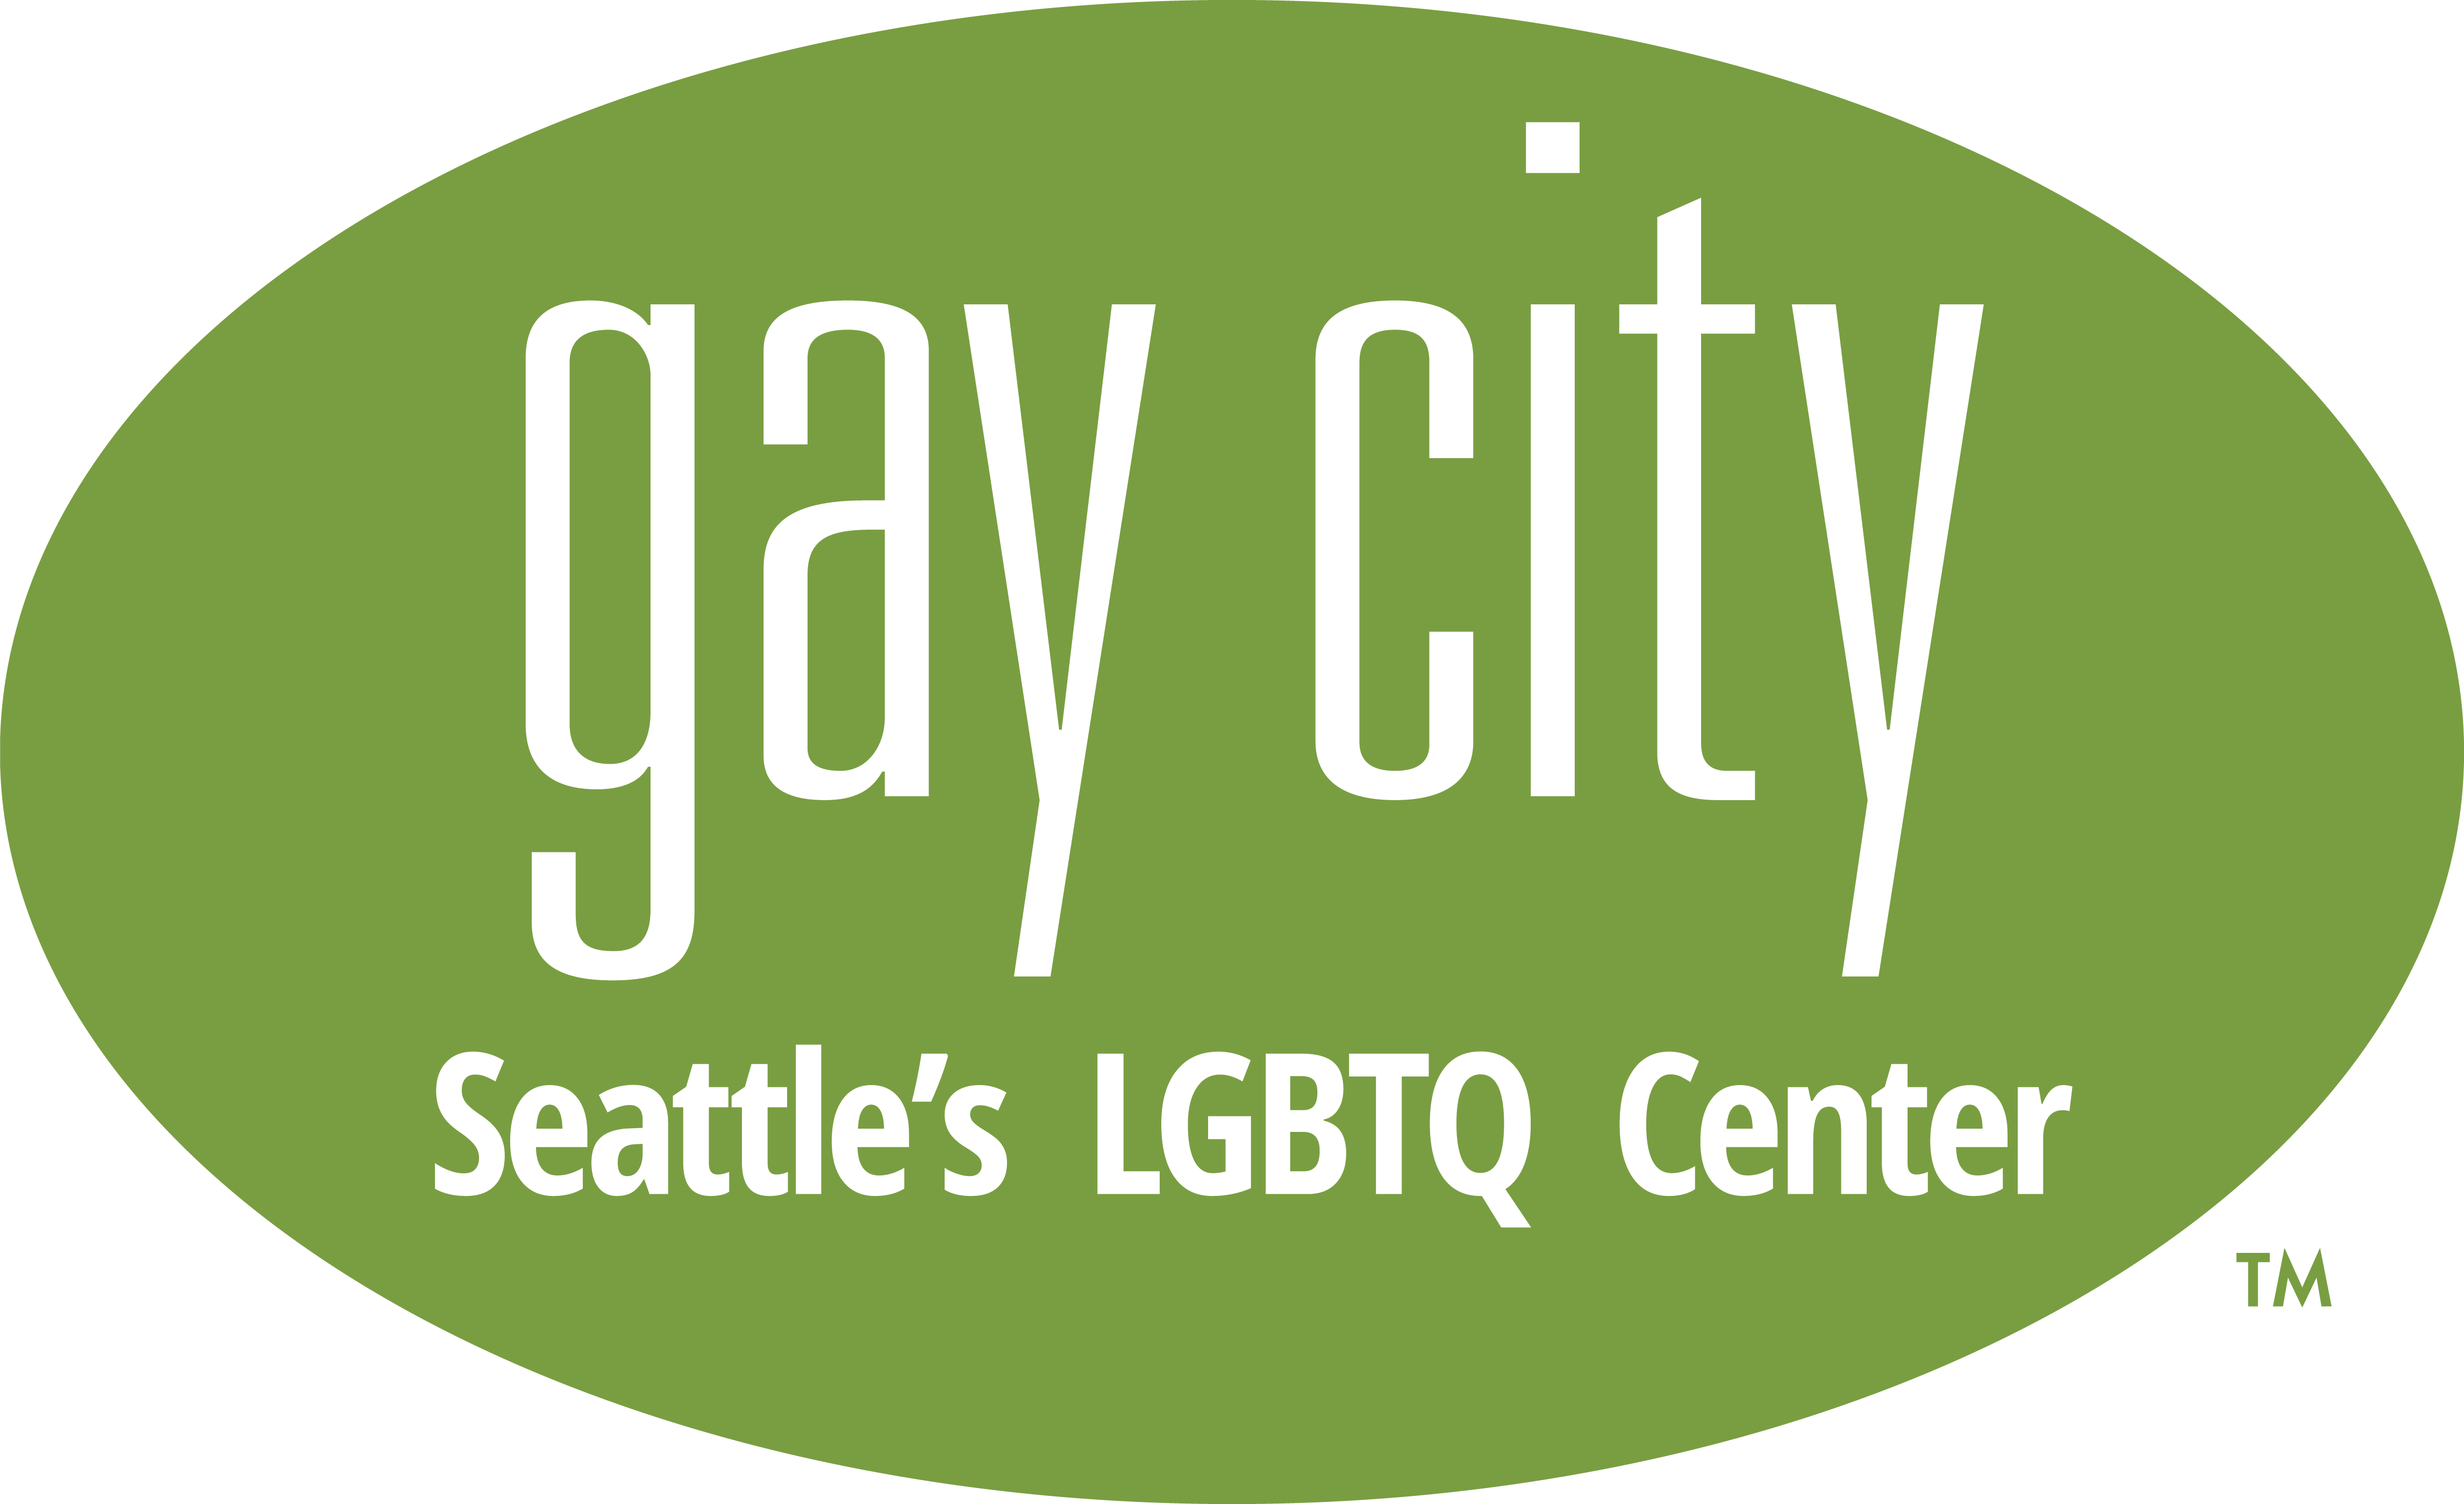 Gay City, Seattle's LGBTQ Center